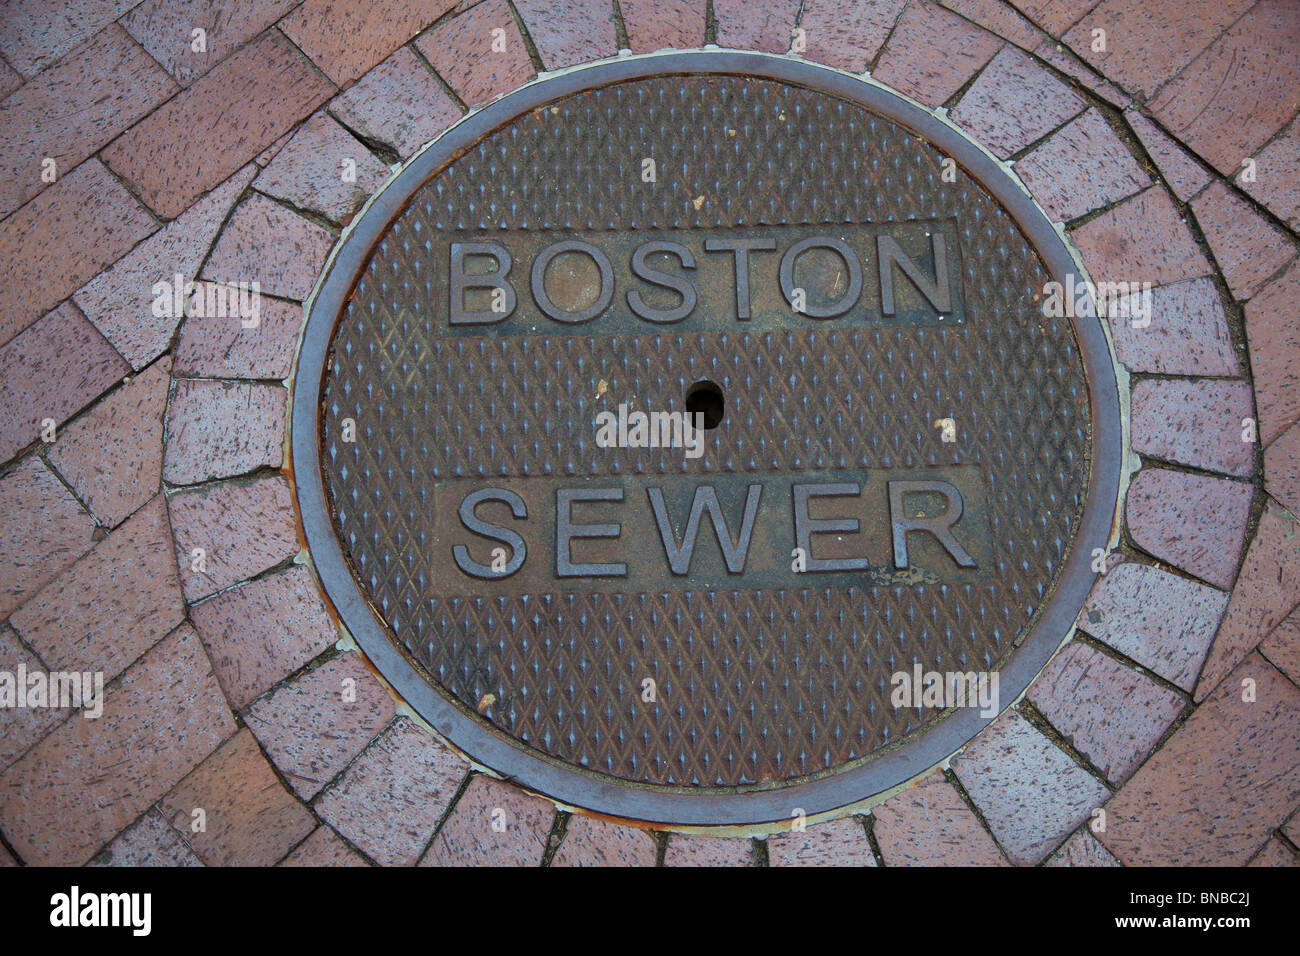 Boston, Massachusetts - A manhole cover on the Boston sewer system. - Stock Image